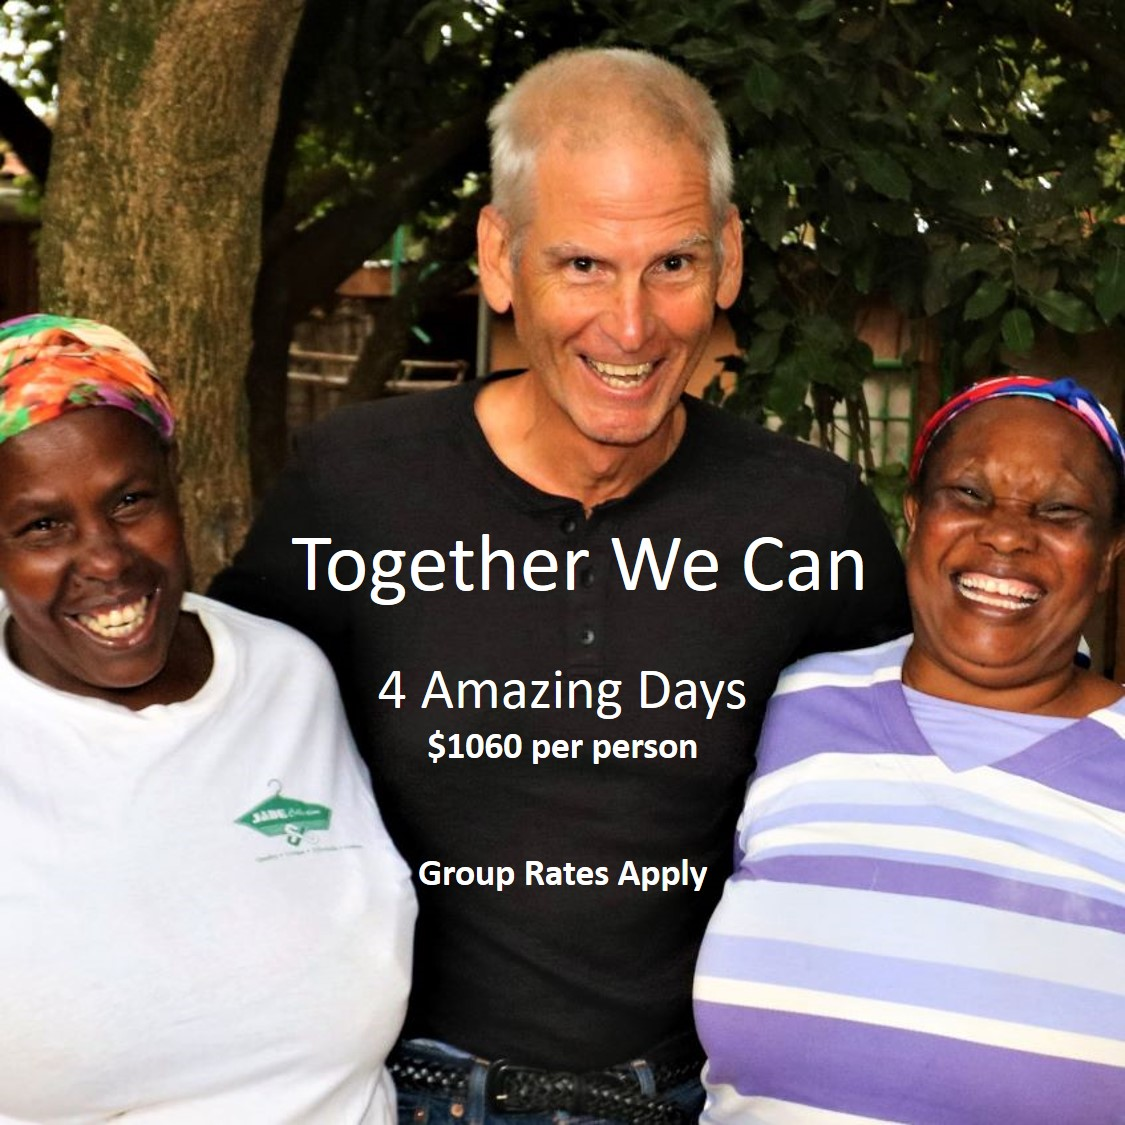 TOGETHER WE CAN – 4 AMAZING DAYS